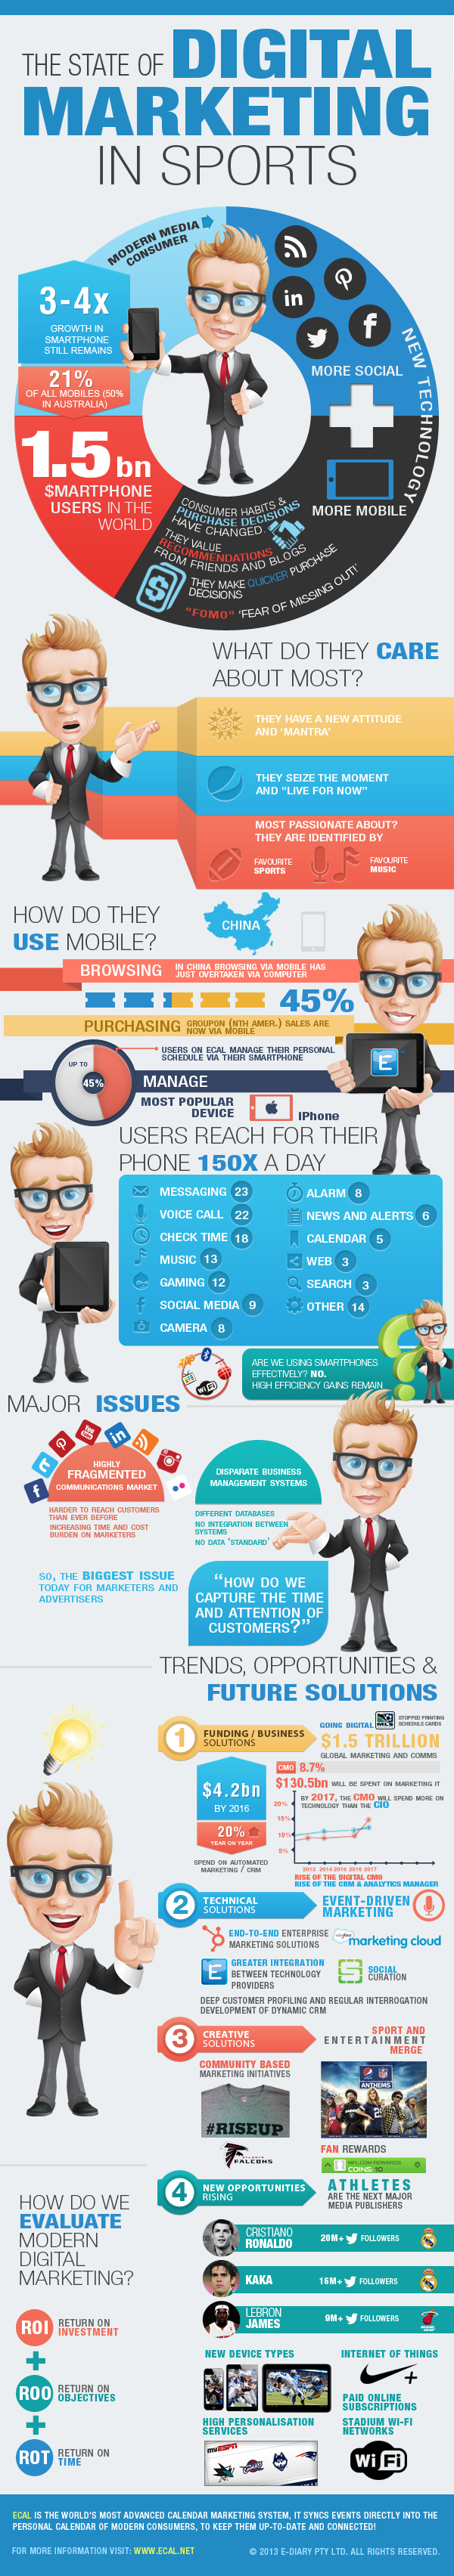 the state of digital marketing in sports infographic social media marketing strategies. Black Bedroom Furniture Sets. Home Design Ideas